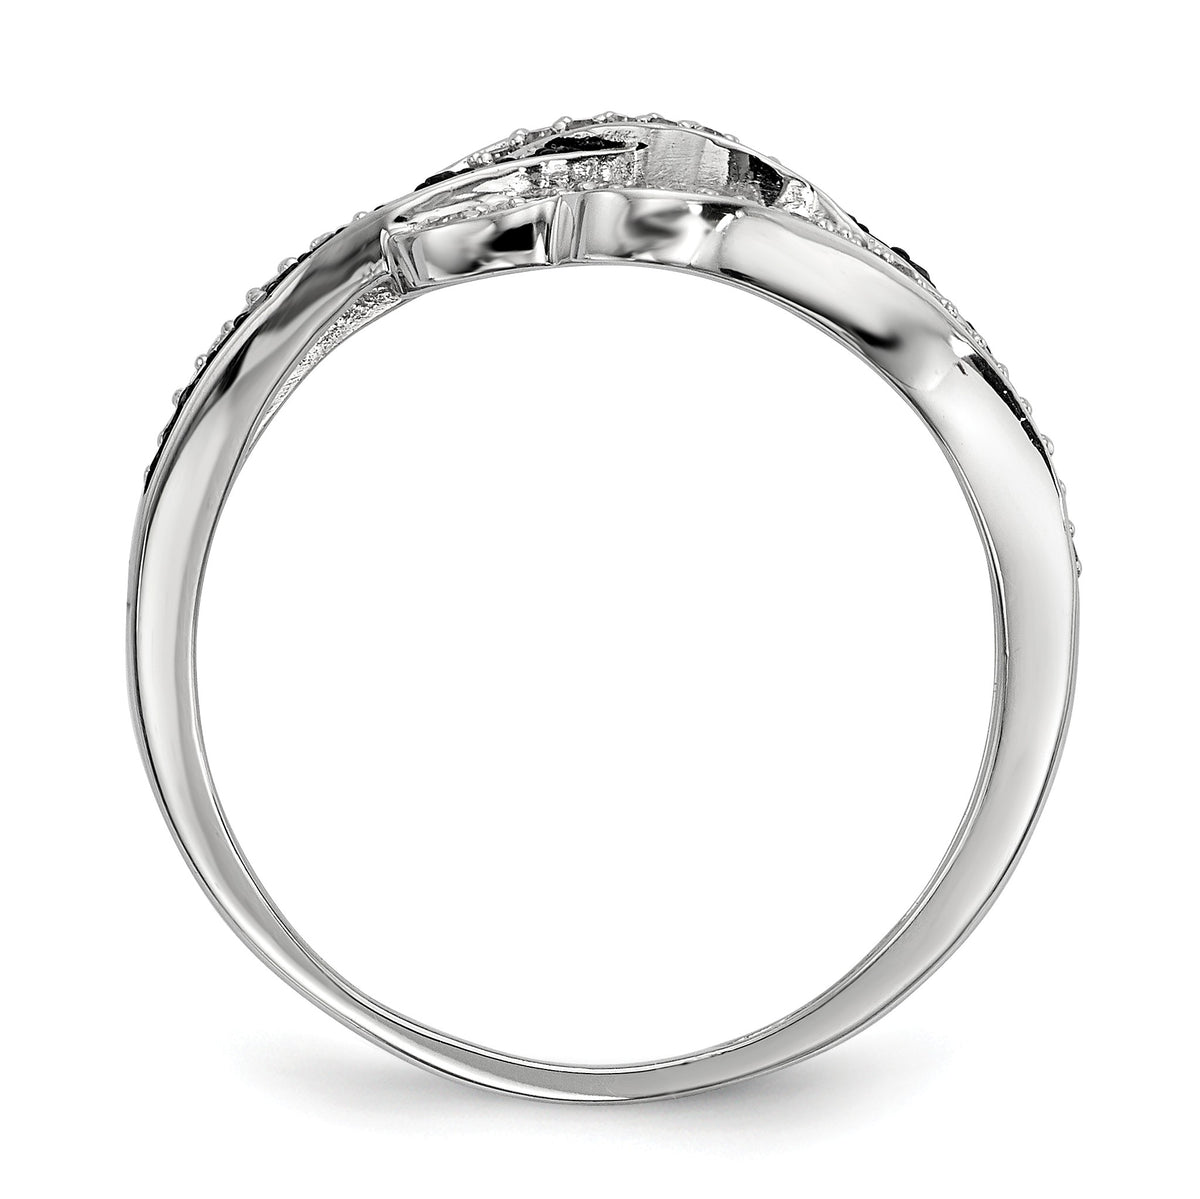 Alternate view of the 1/4 Ctw Black & White Diamond Twisted Hearts Ring in Sterling Silver by The Black Bow Jewelry Co.